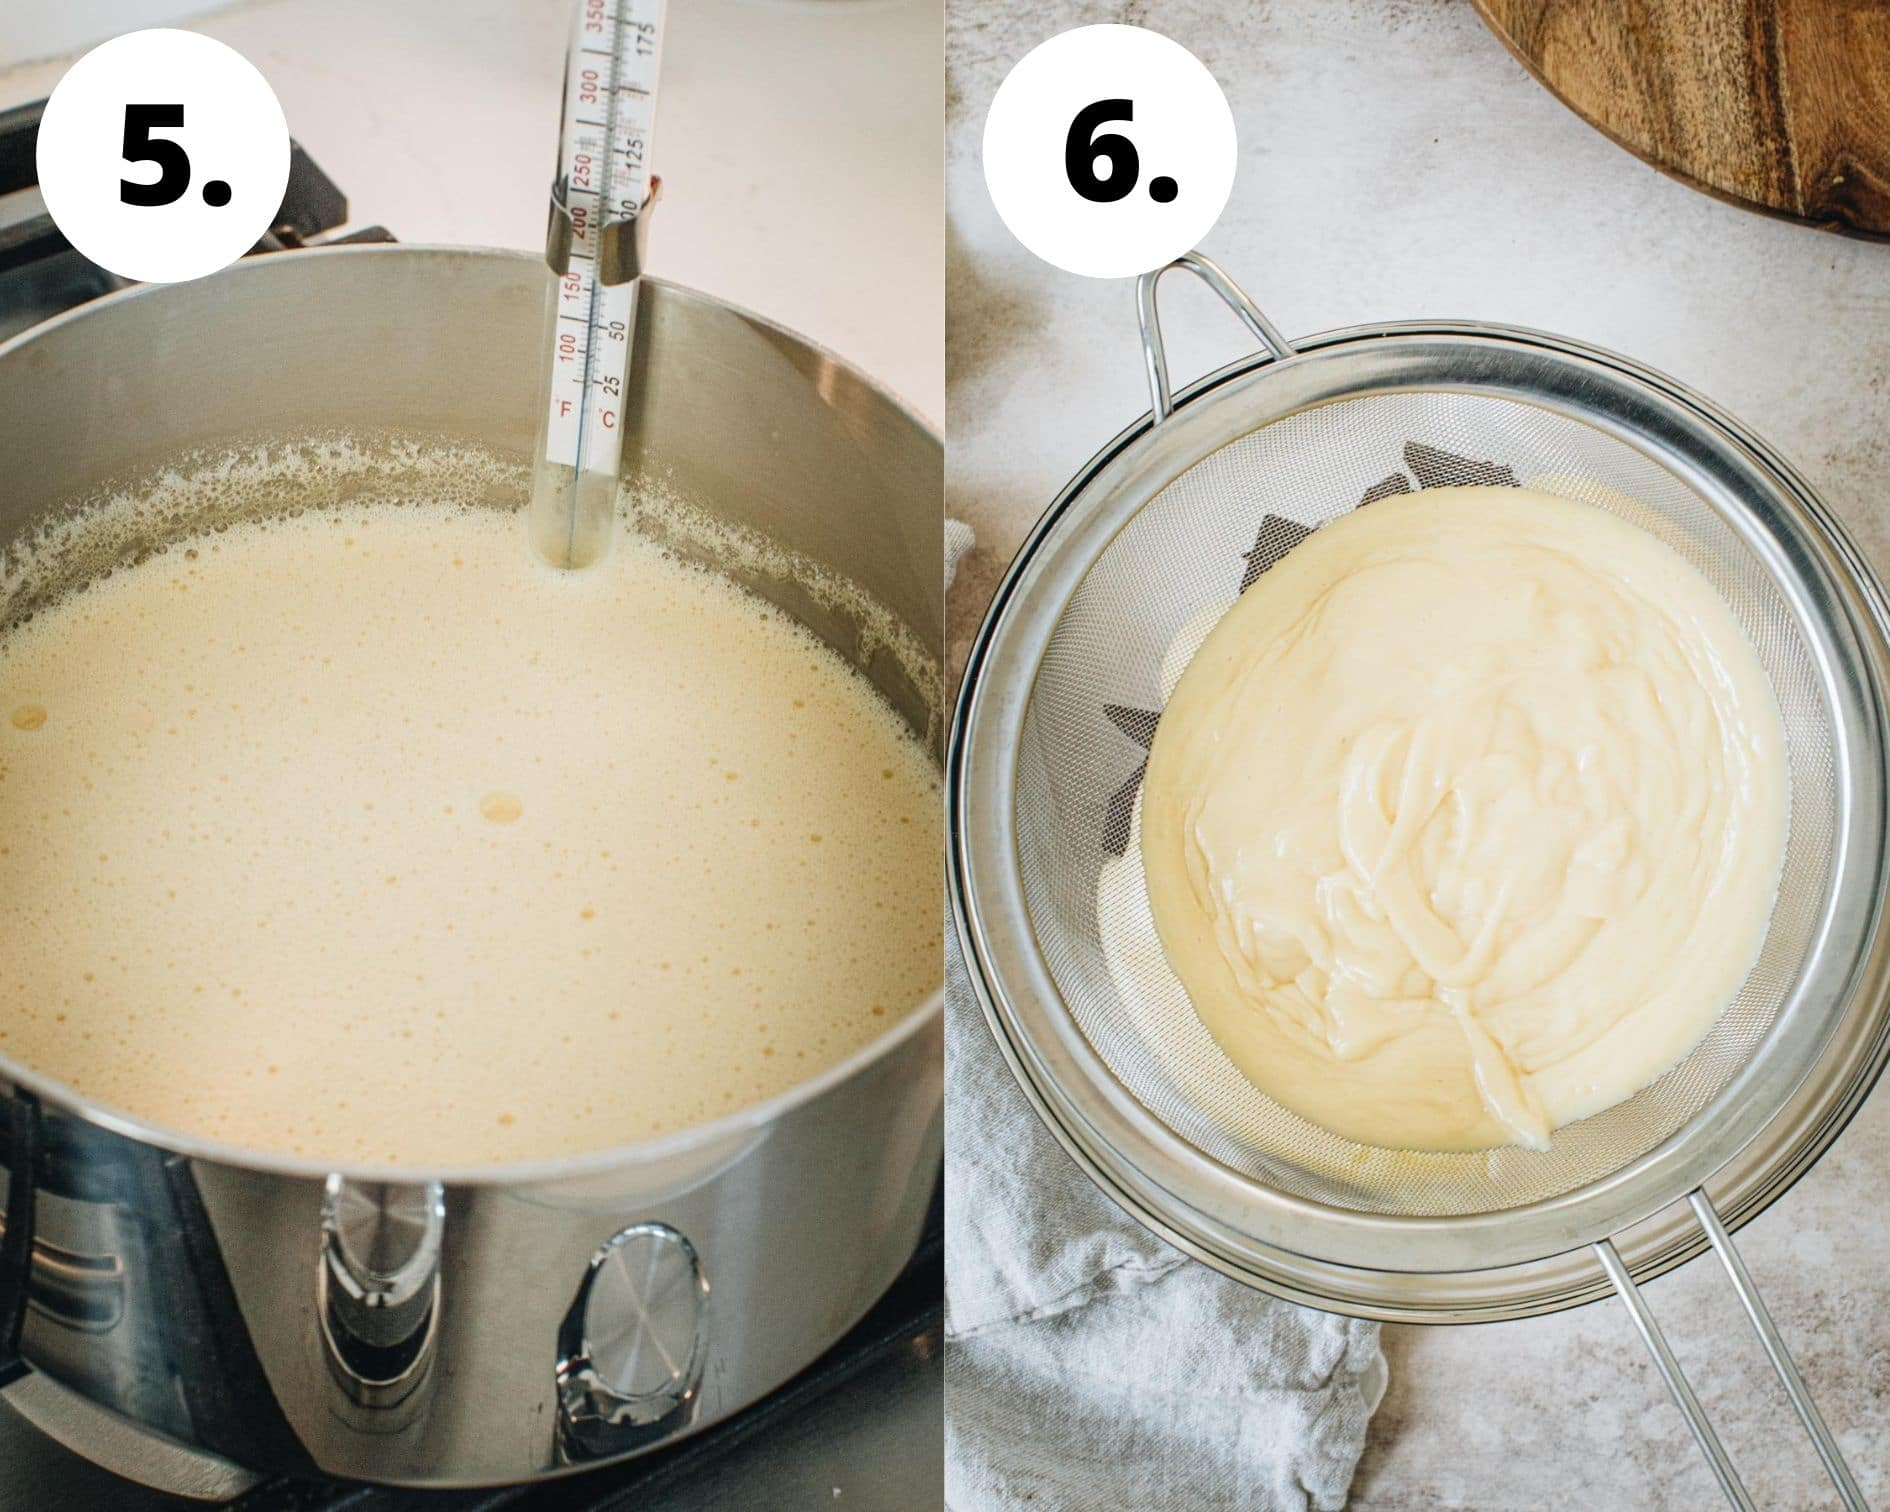 S'mores pie process steps 5 and 6.